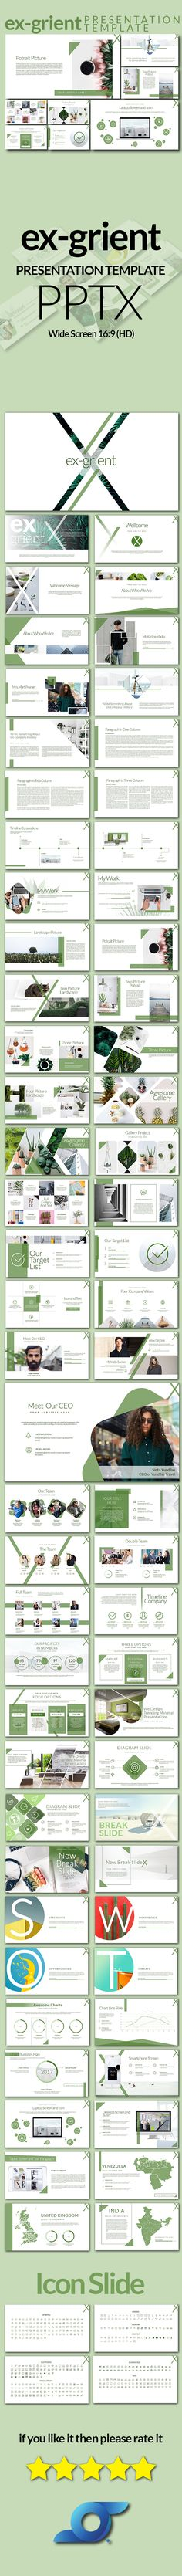 Ex-Grient Minimal Presentation - #PowerPoint Templates #Presentation Templates Download here: https://graphicriver.net/item/exgrient-minimal-presentation/19711255?ref=alena994